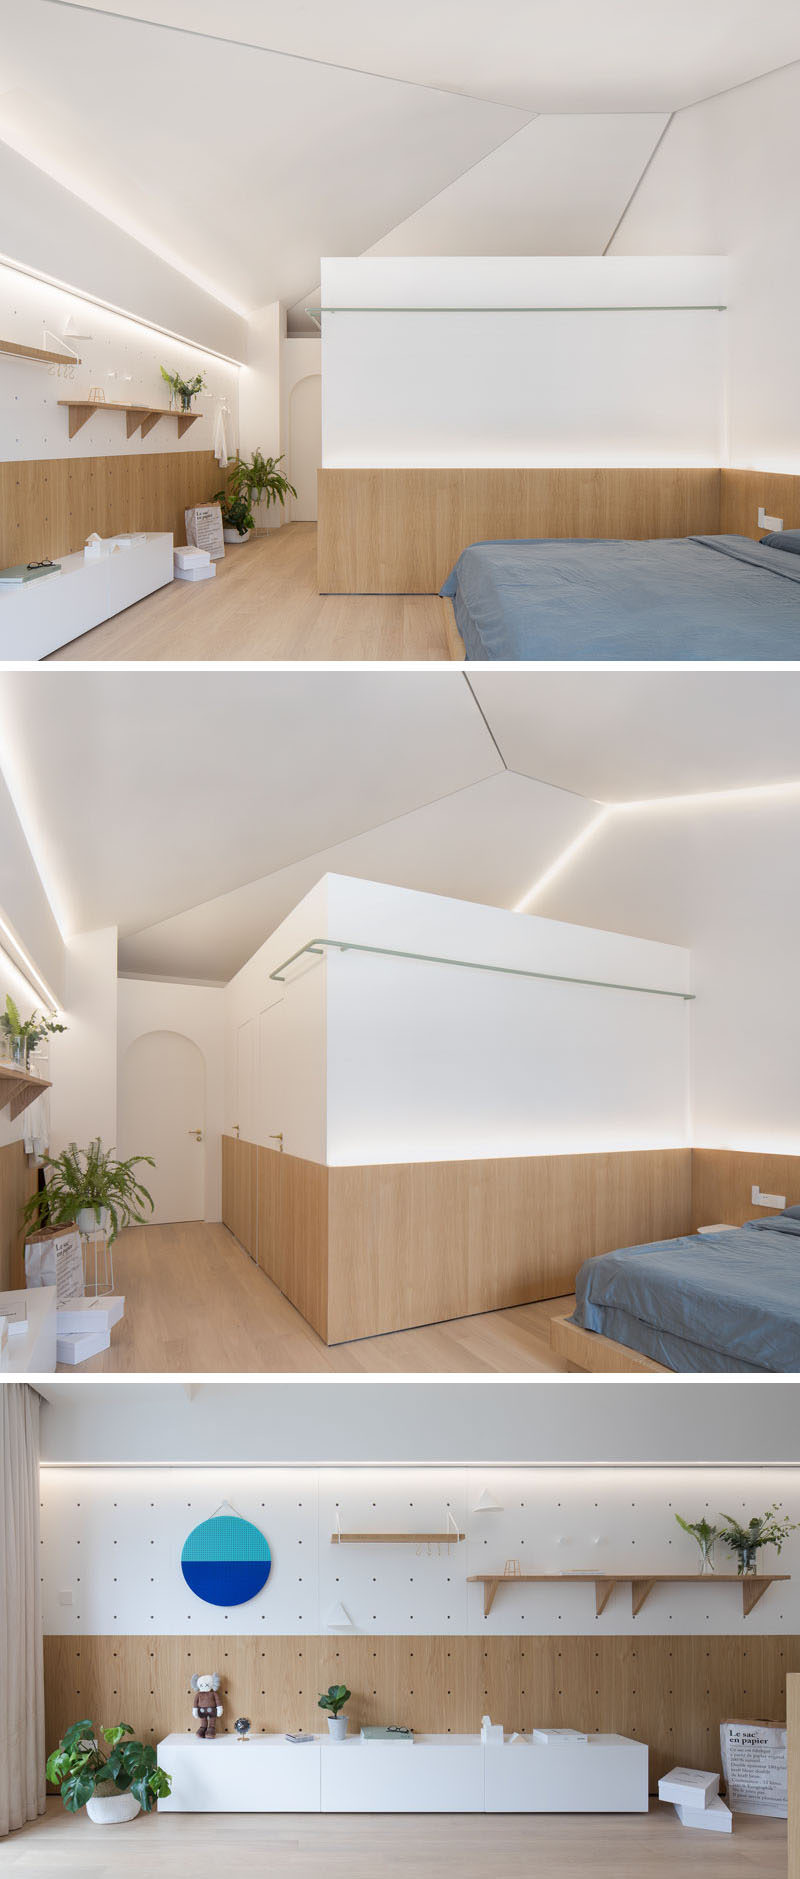 In this renovated master bedroom, the designers kept thesloped ceiling structure of the original building. Wood wraps around the lower part of the room, and on the wall opposite the bed, there's a display wall which can be changed up, much like the wall in the living room. #ModernBedroom #MasterBedroom #Shelving